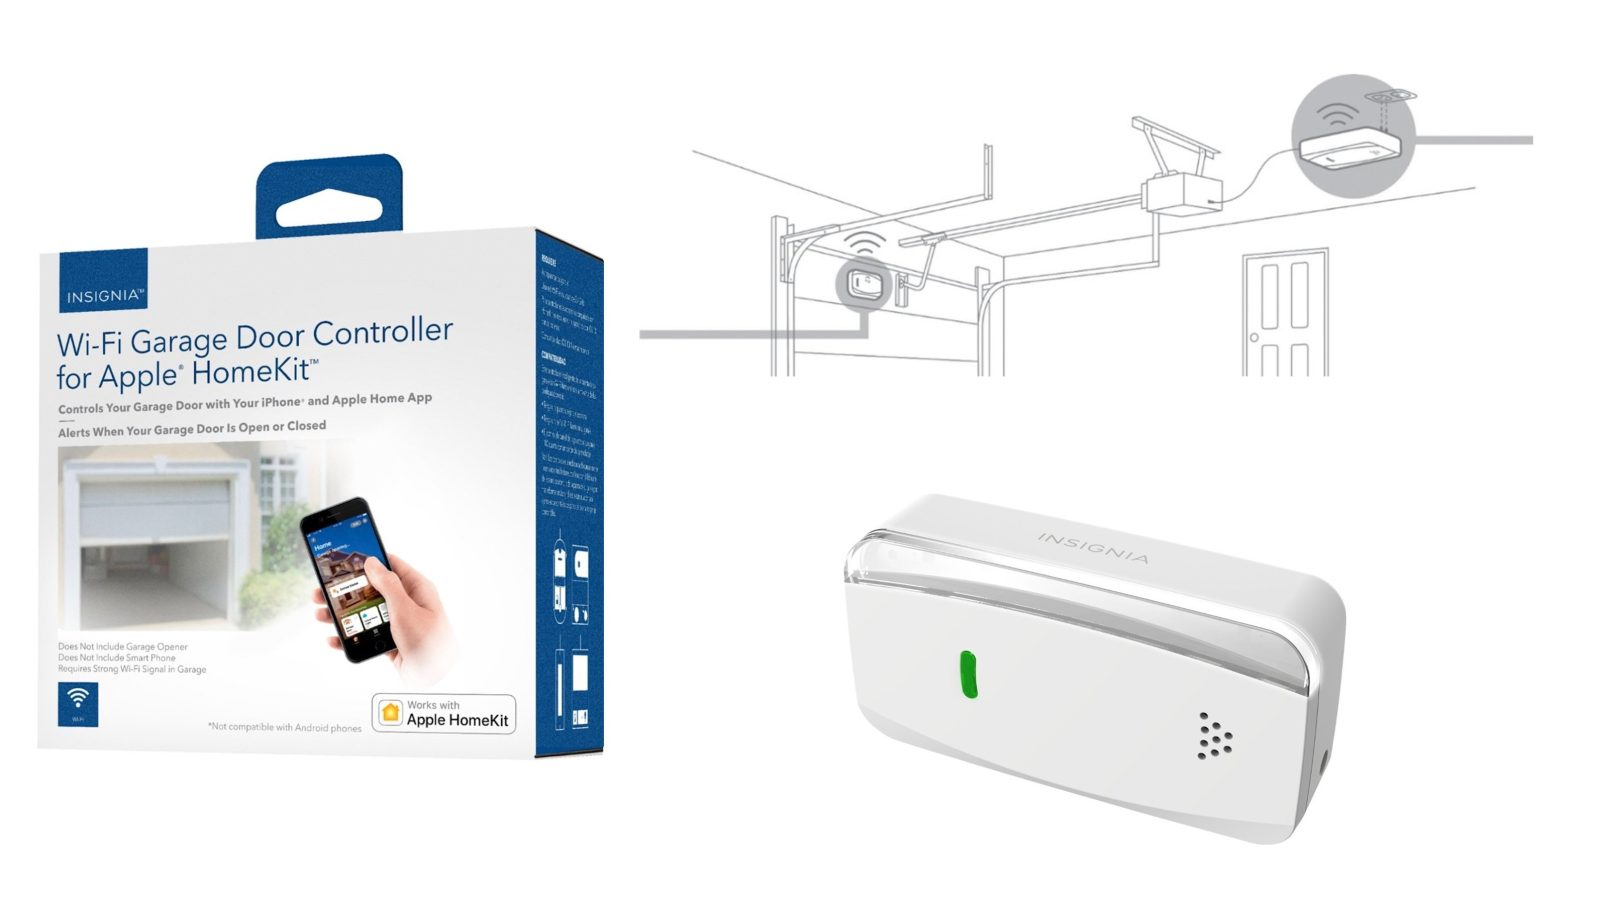 hight resolution of insignia introduces new homekit enabled smart garage door controller currently priced at 45